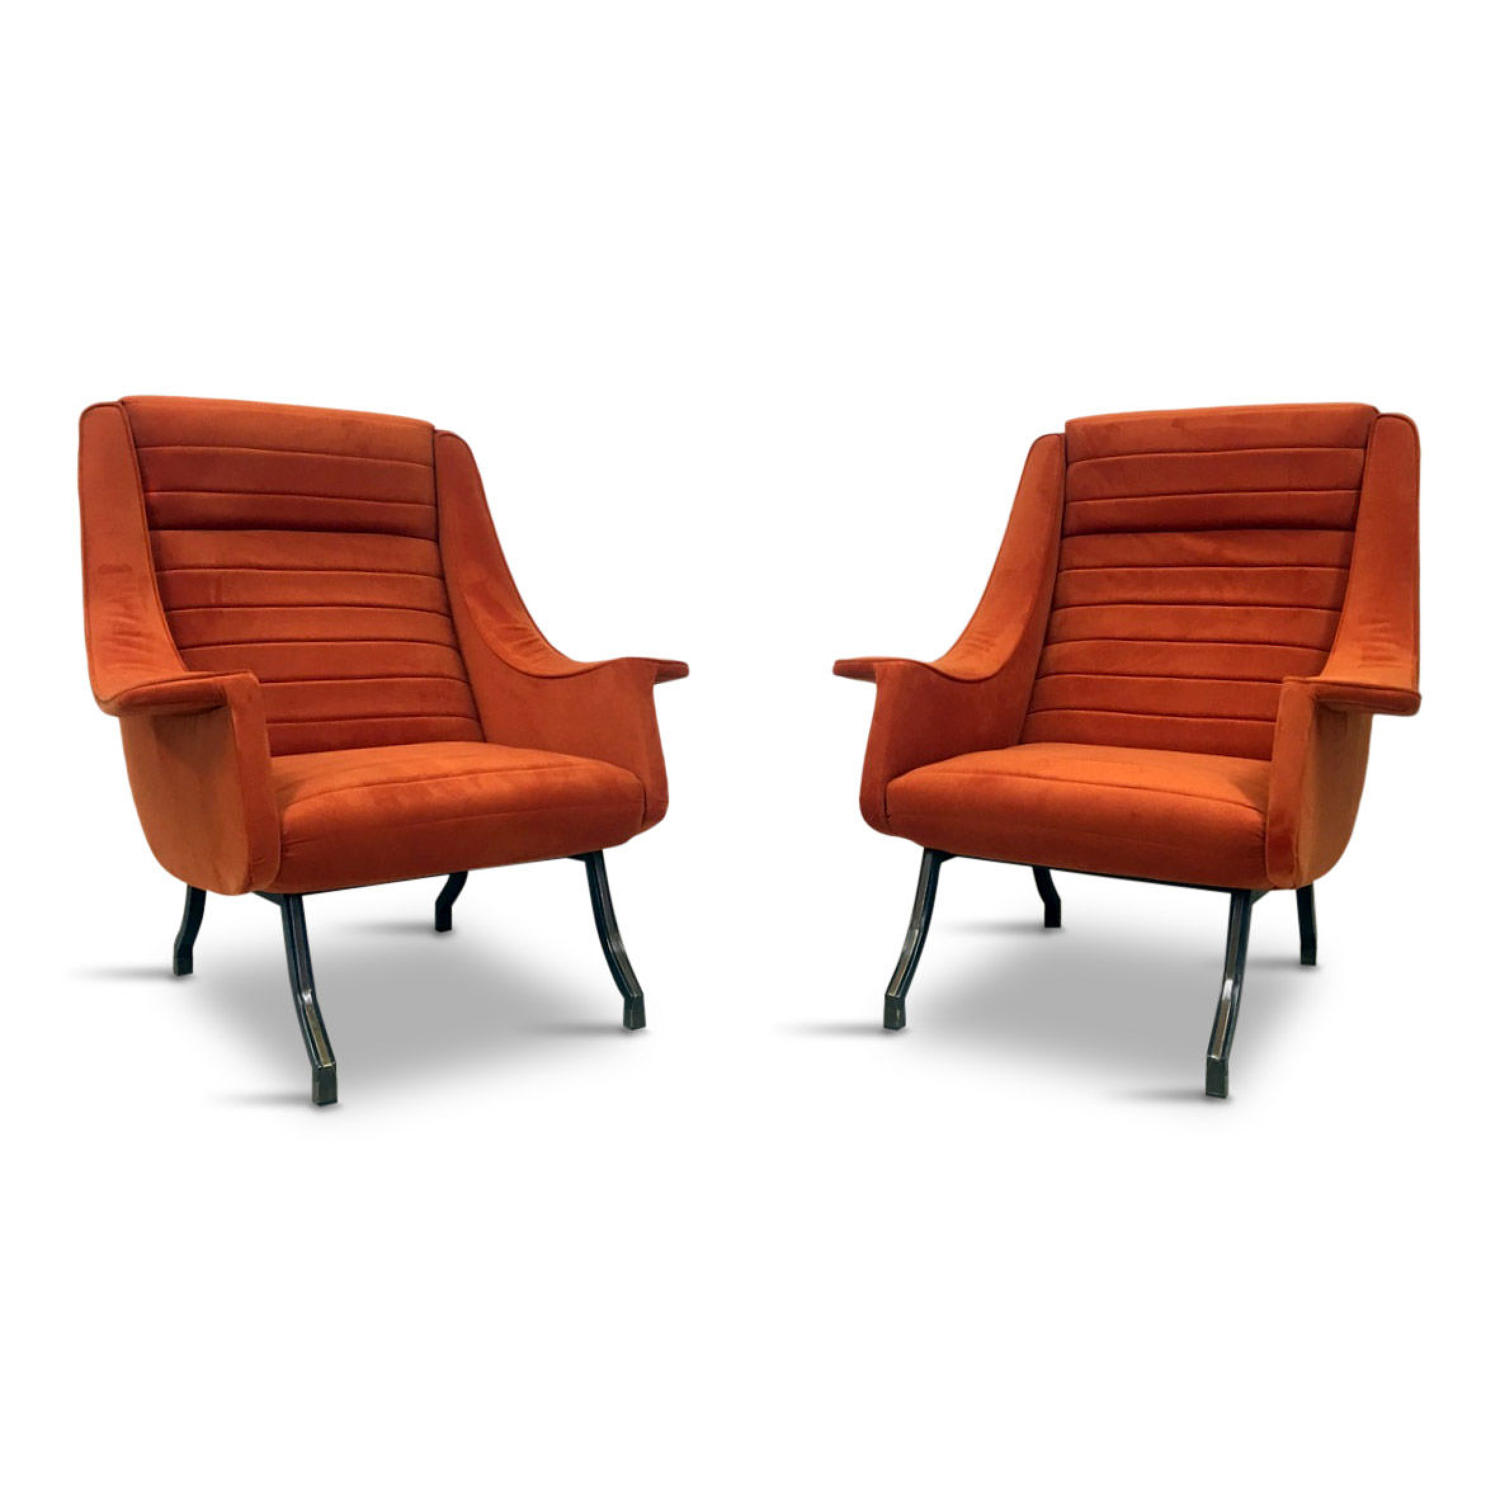 A pair of 1960s Italian armchairs in orange velvet